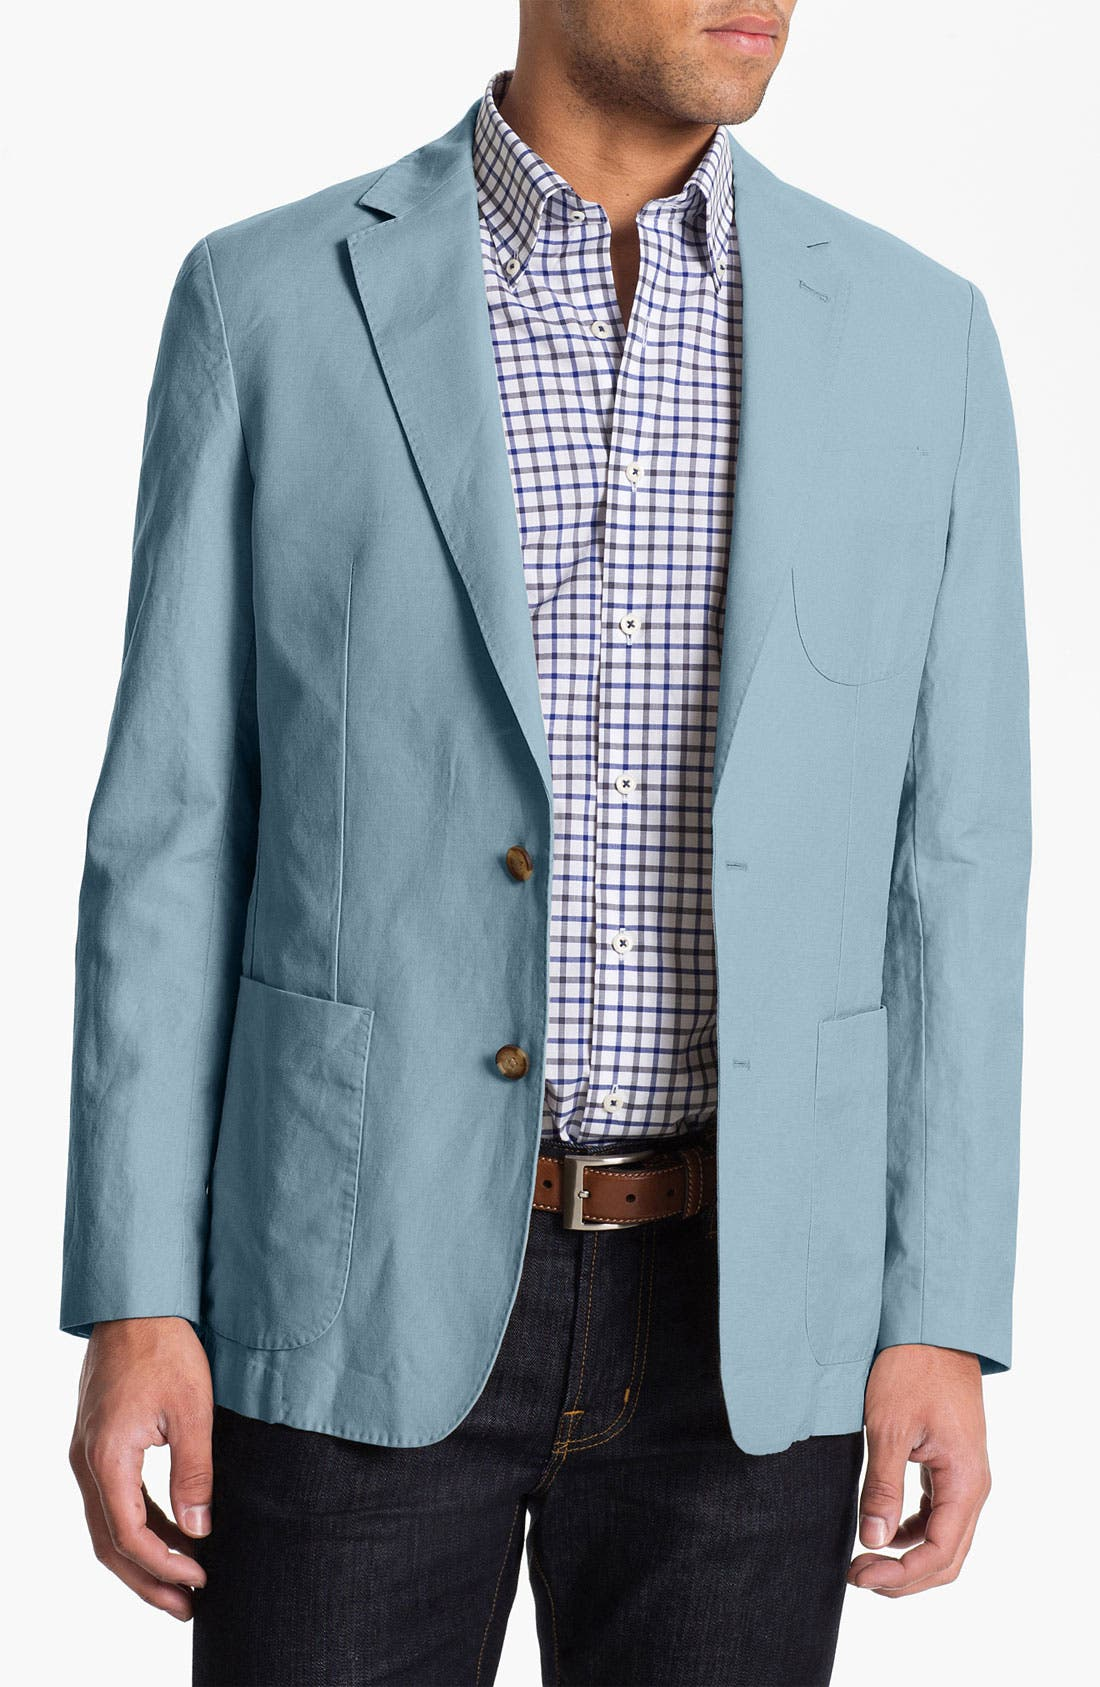 Alternate Image 1 Selected - Peter Millar Linen Blend Sportcoat